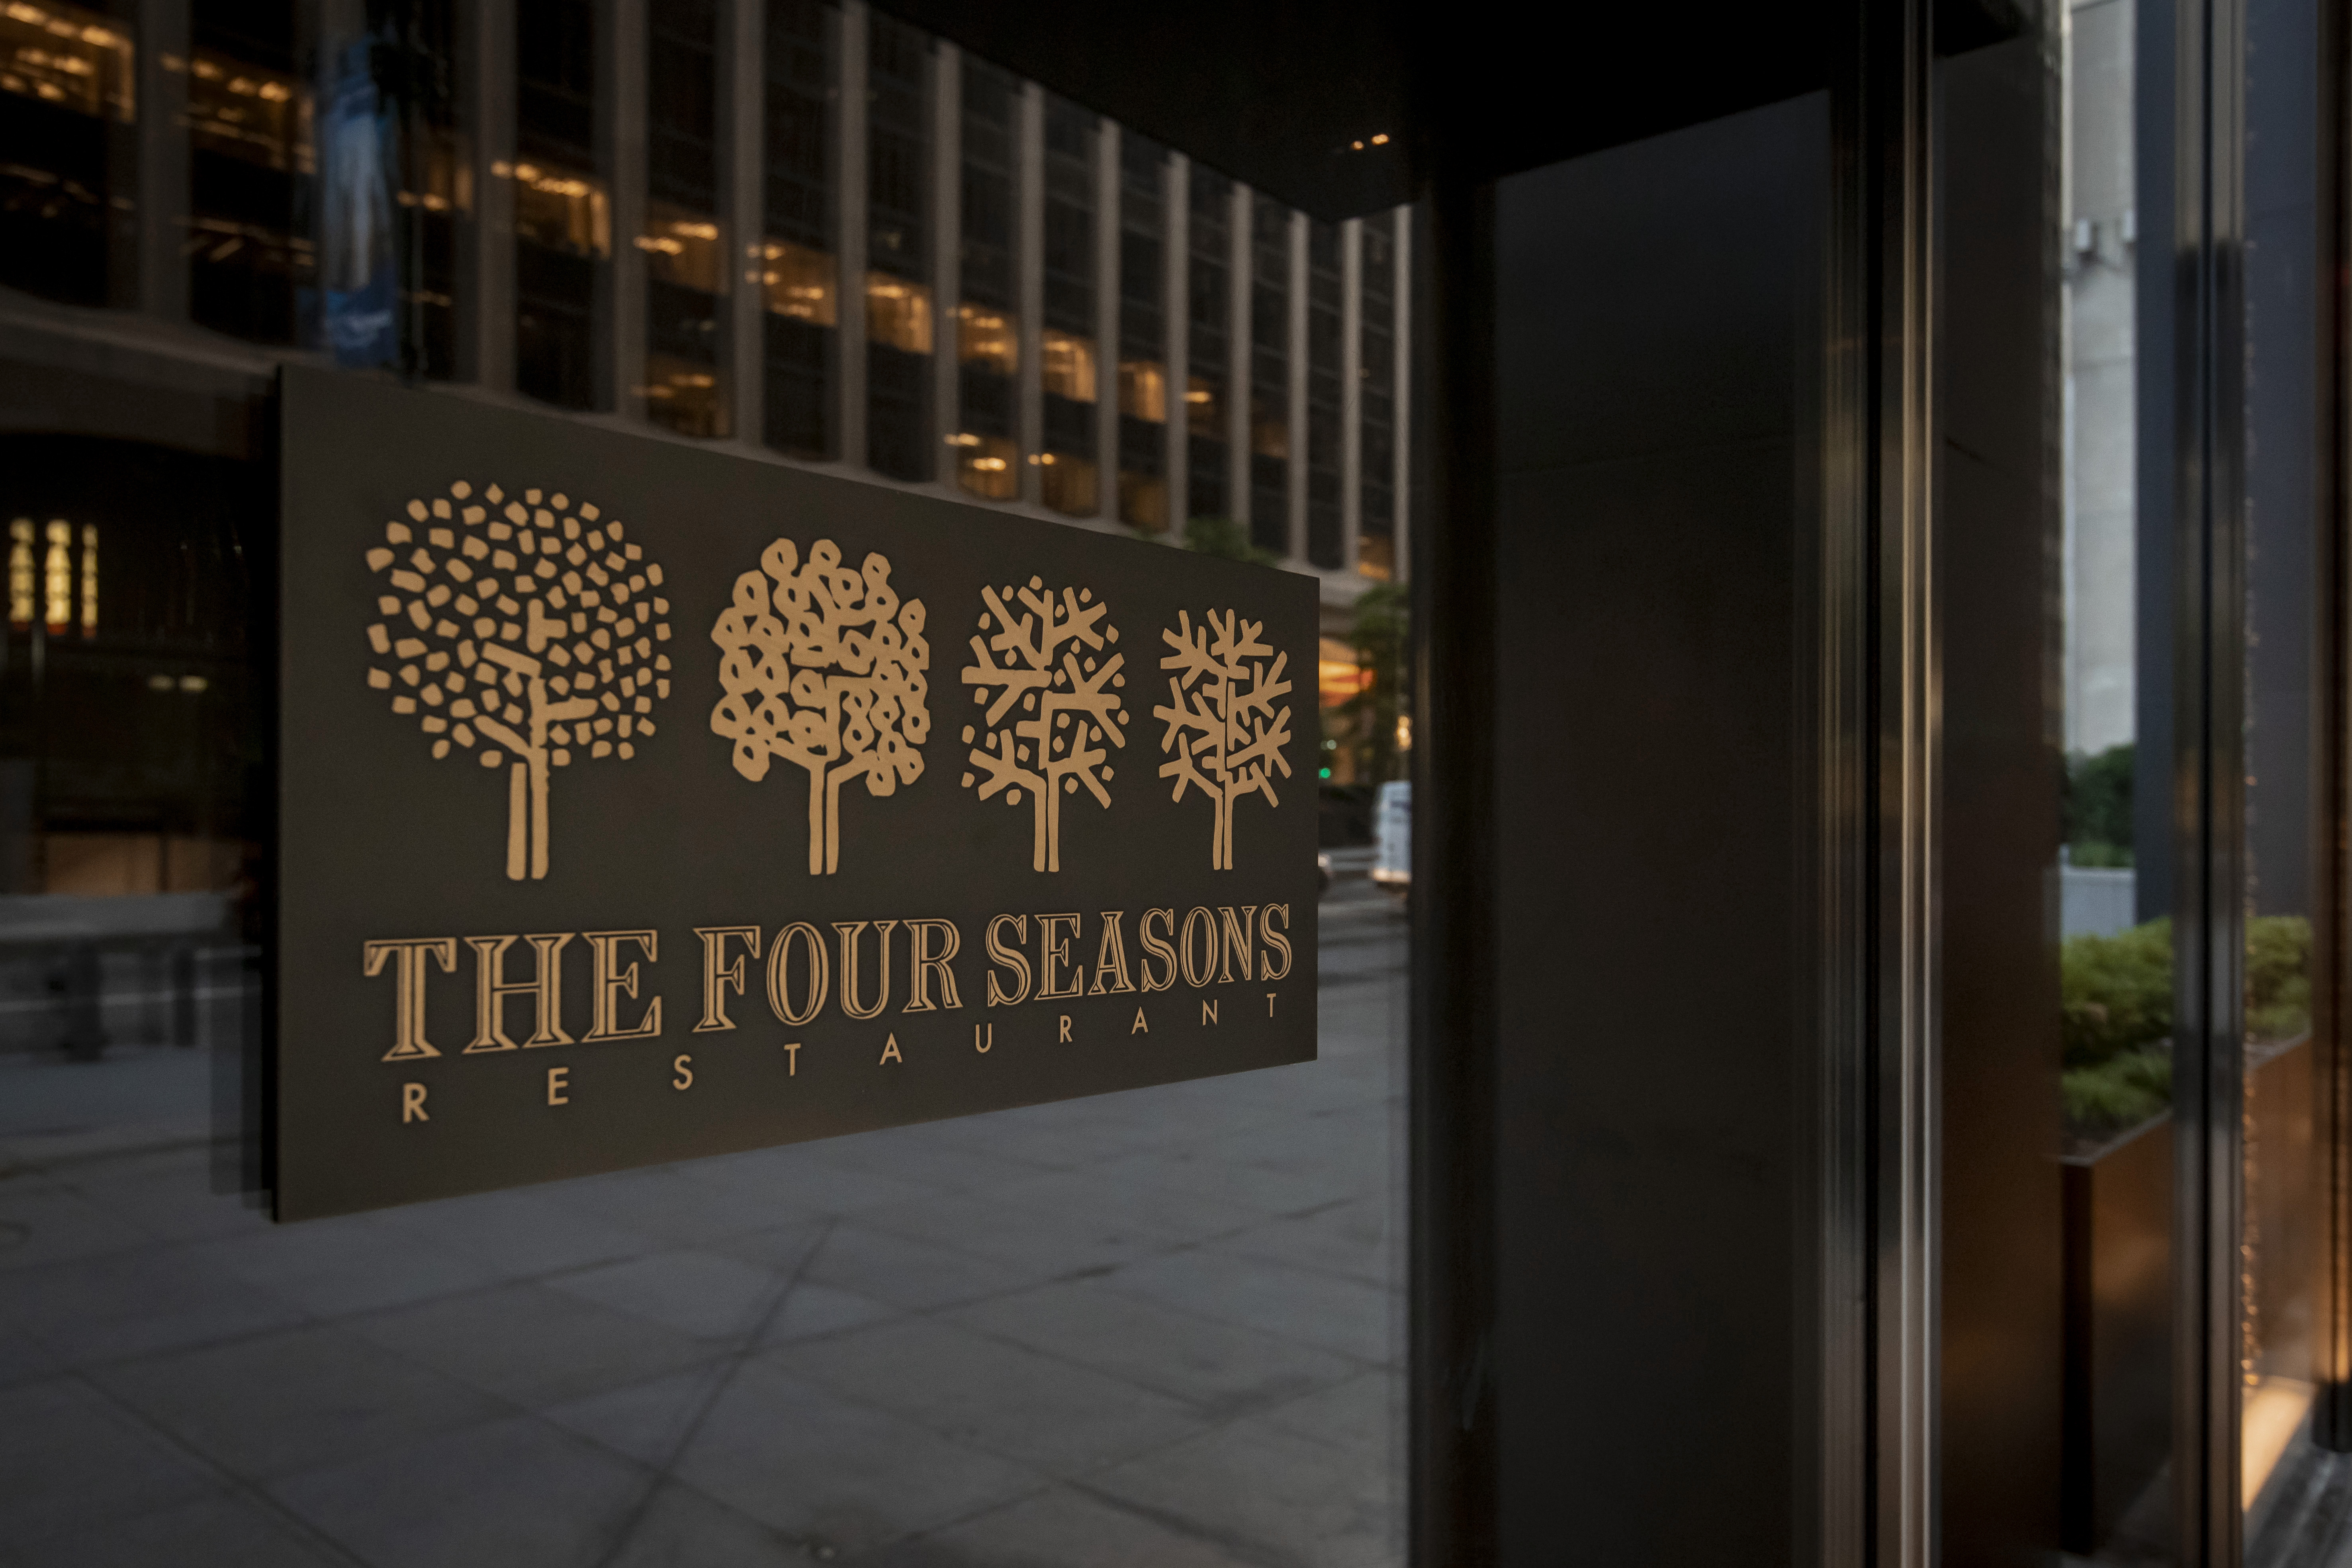 Iconic Four Seasons Restaurant Will Close After Short and Troubled $40M Revival